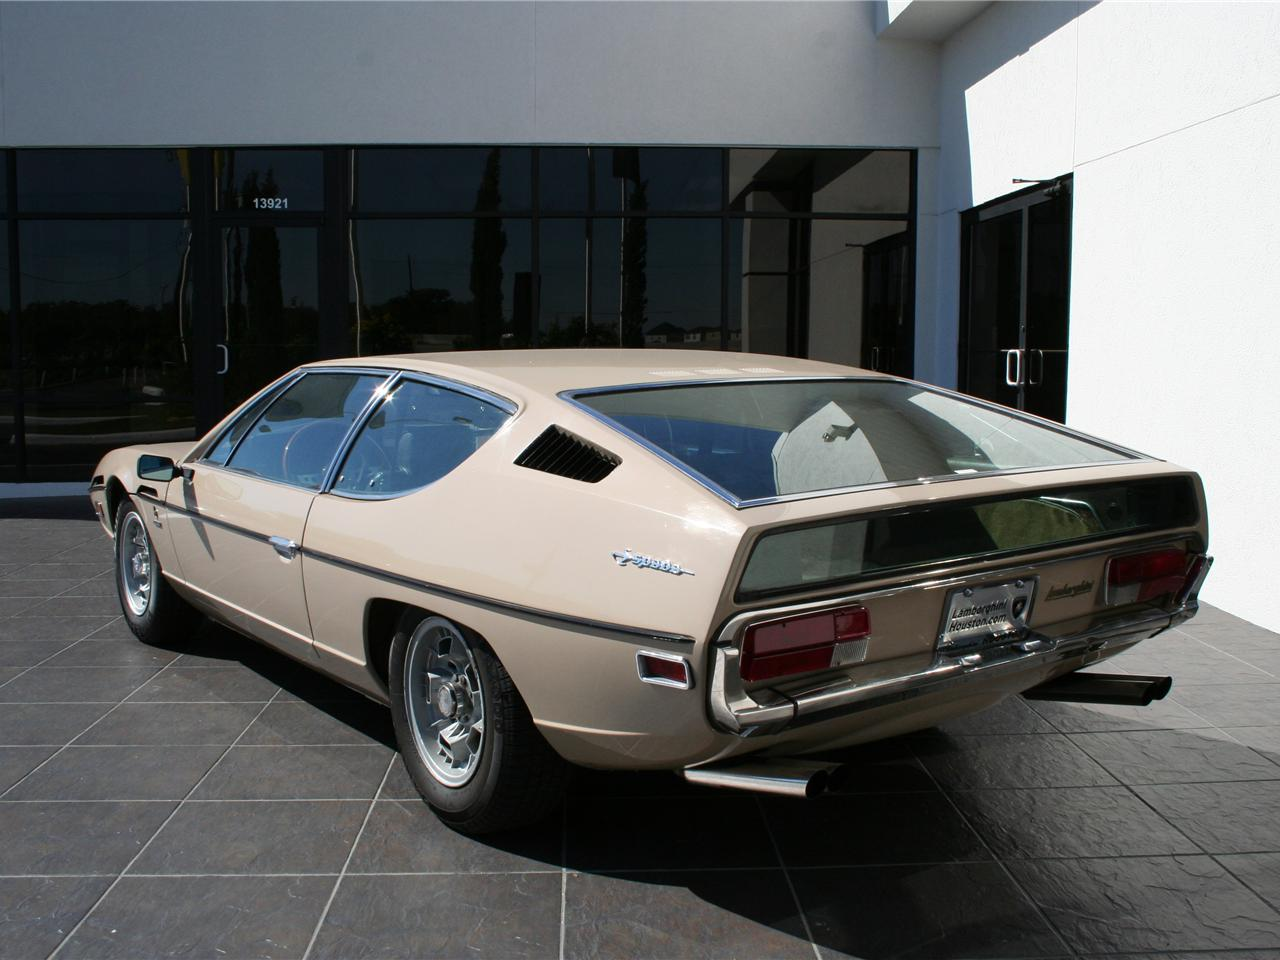 First Lamborghini Ever Made >> lamborghini espada | IEDEI